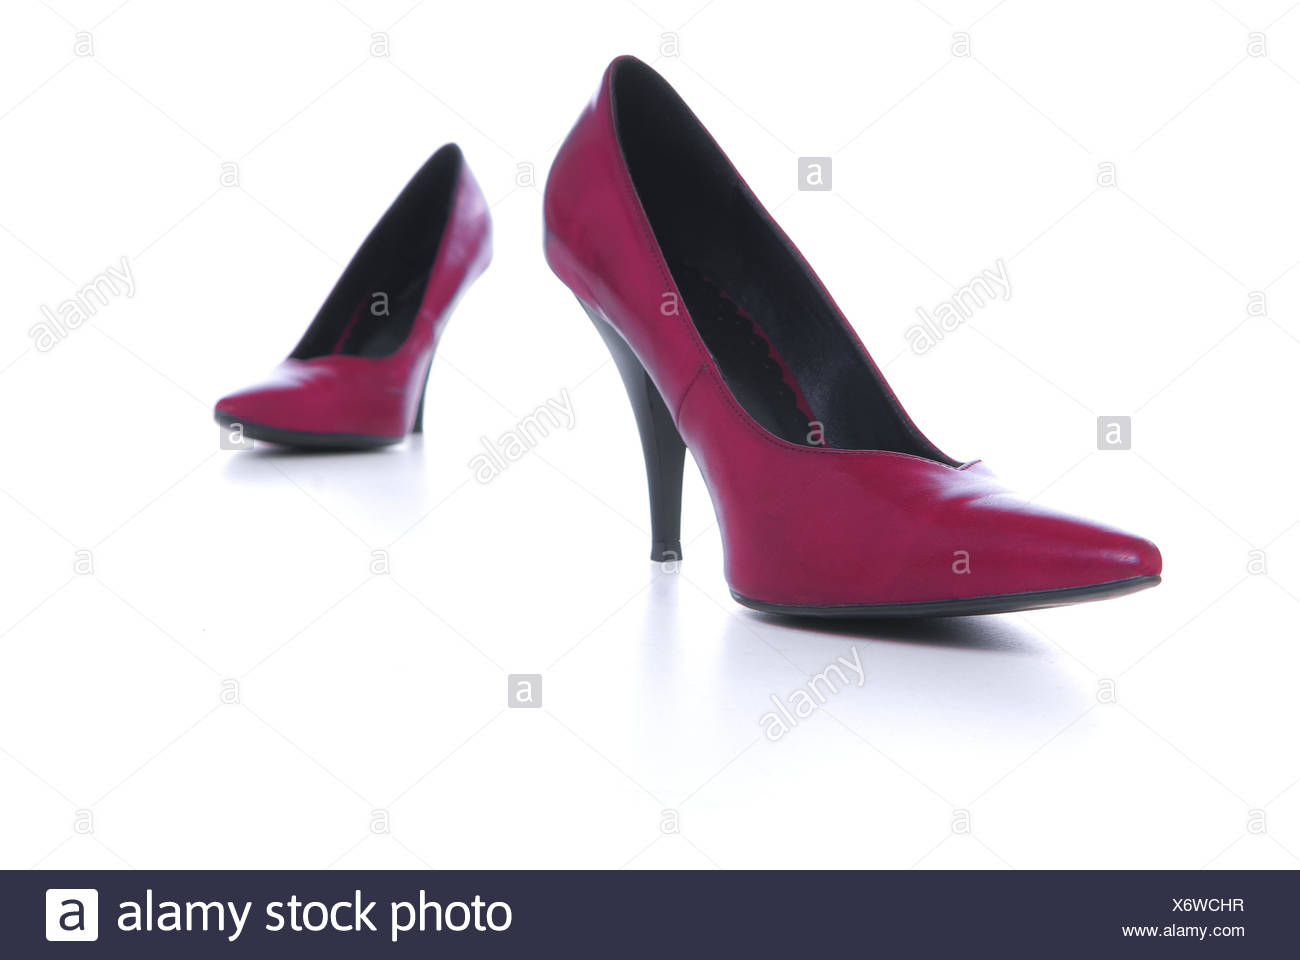 Pumps - Stock Image